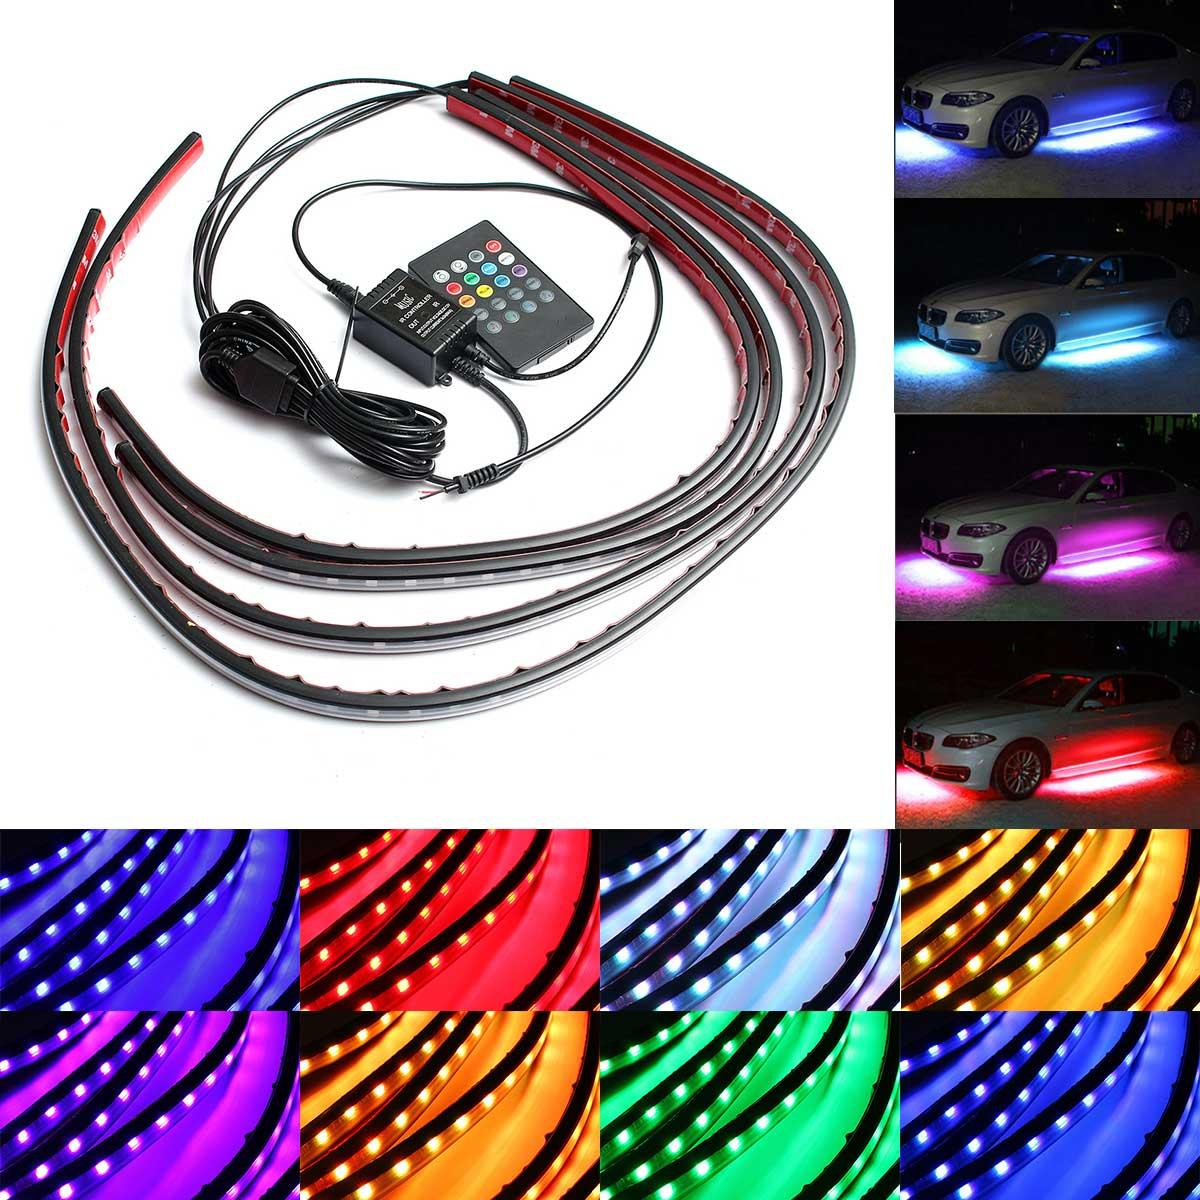 Led Light Strips Rgb 4pcs Waterproof Rgb Car Led Decoration Lights Strip Underglow Neon Lamp Kit 12v With Remote Control